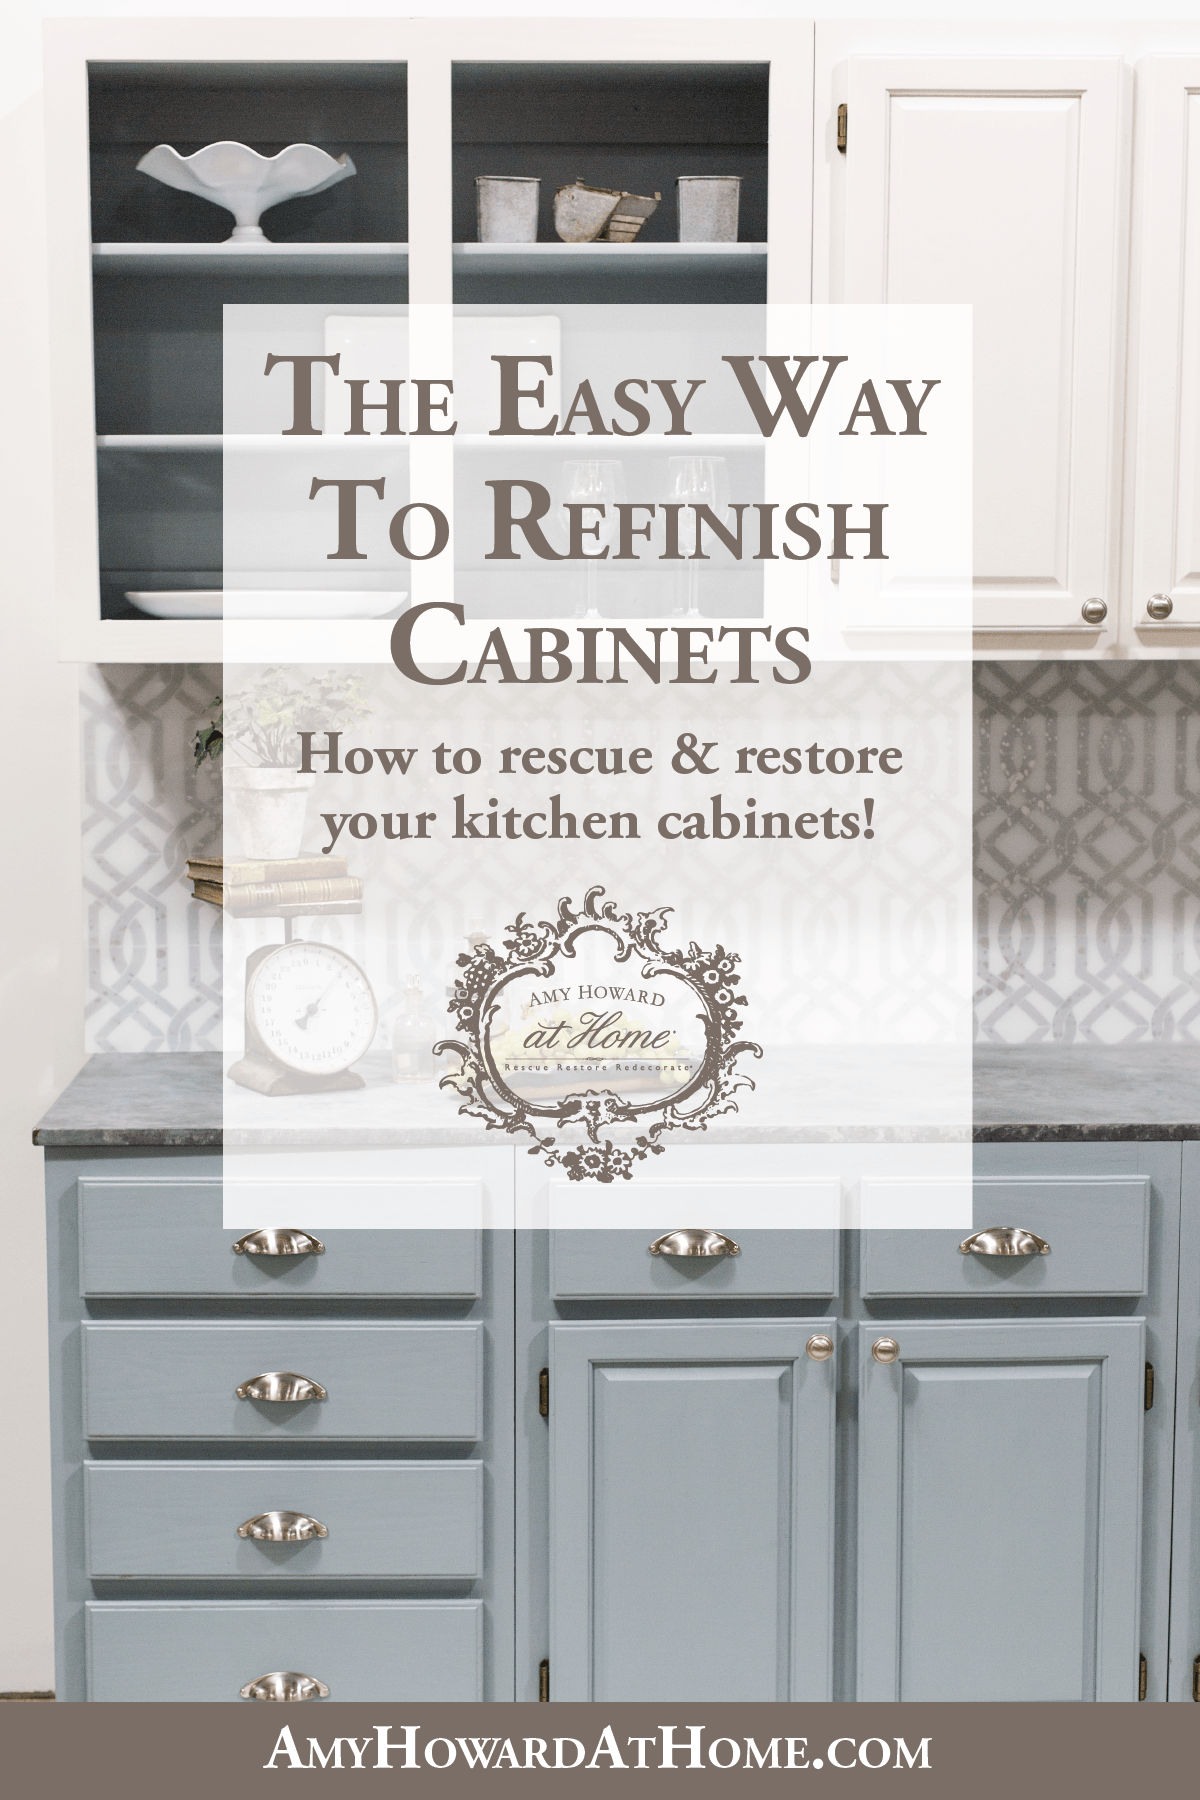 The Easy Way To Refinish Cabinets Refinishing Cabinets Kitchen Cabinets Refinish Kitchen Cabinets